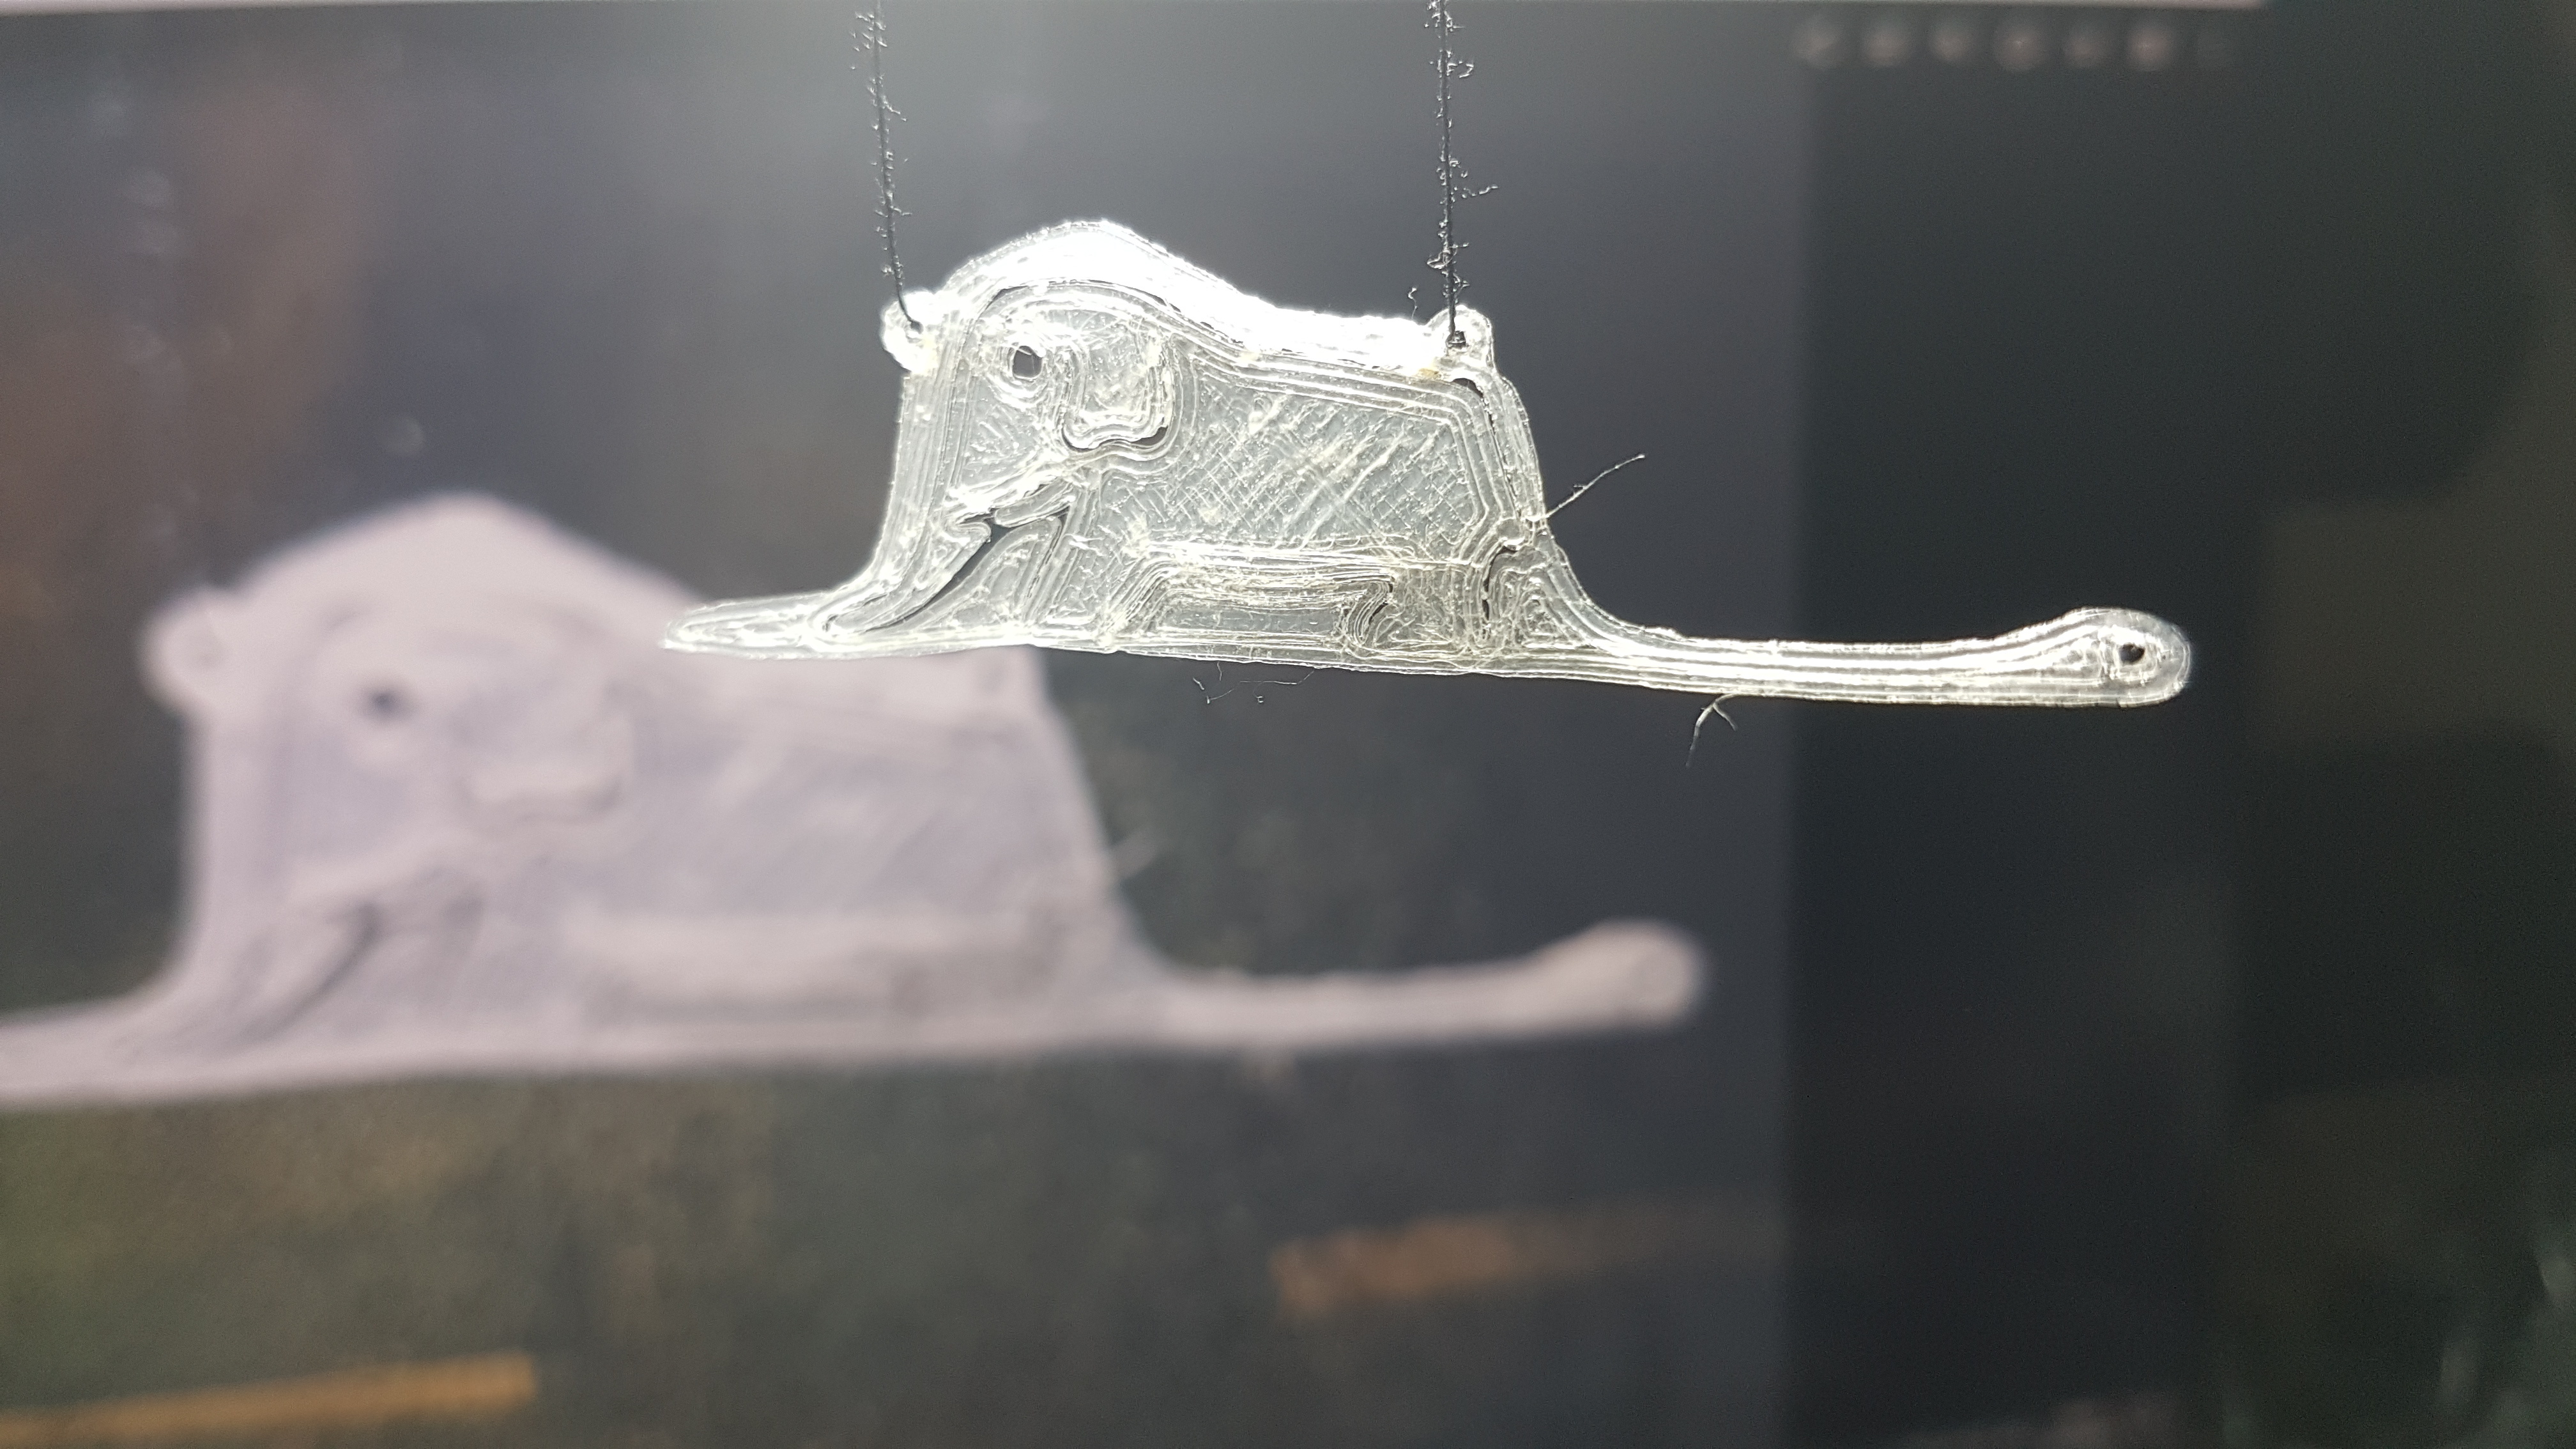 20191113_162657.jpg Download free STL file Pendant-boa constrictor who has swallowed an elephant 'Little Prince' • Model to 3D print, mariospeed